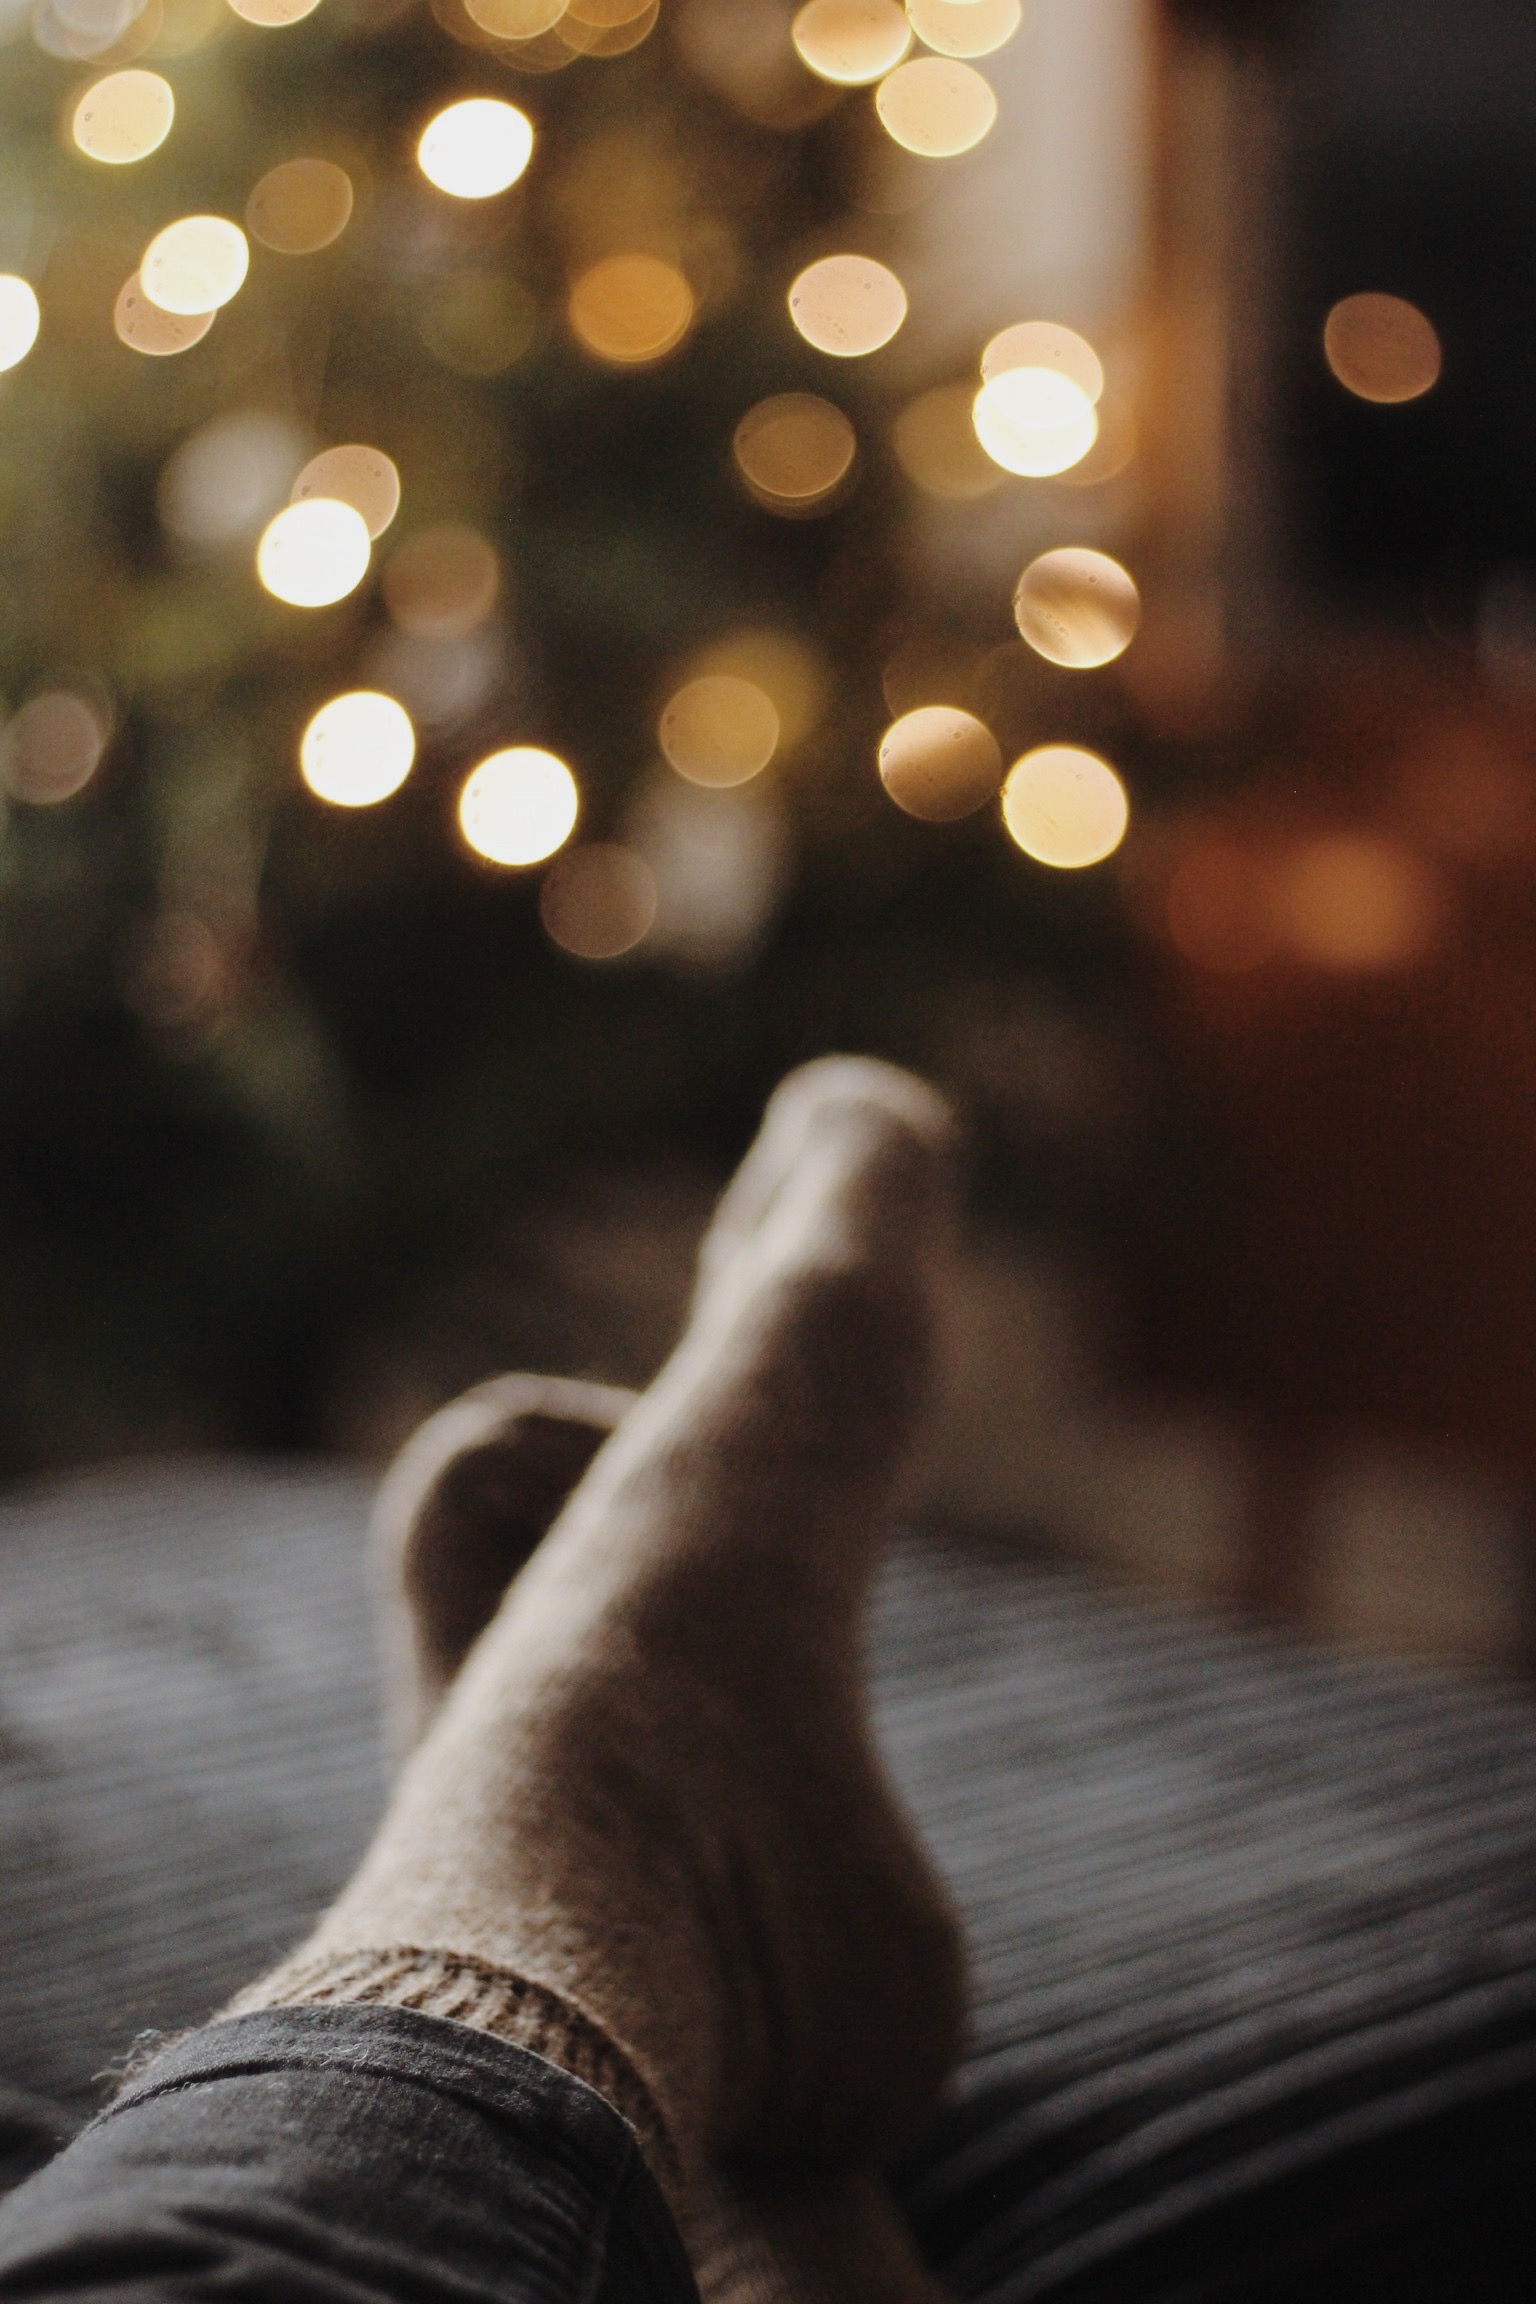 Cosy Christmas, warm woolly socks, bokeh Christmas tree lights